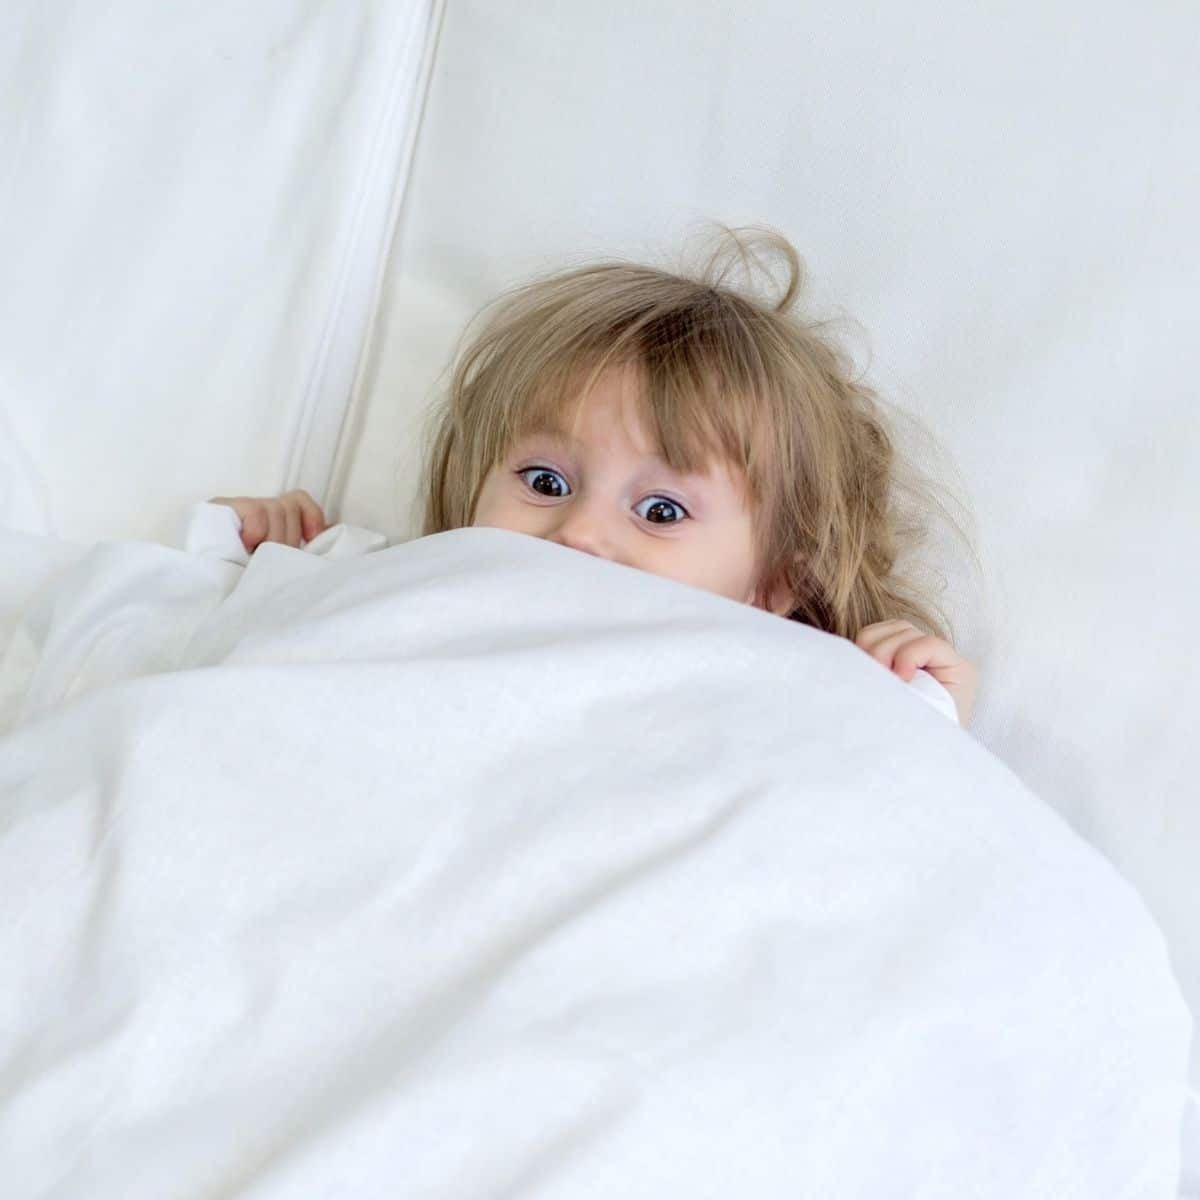 little girl hiding underneath white bedsheets with her eyes and hands showing